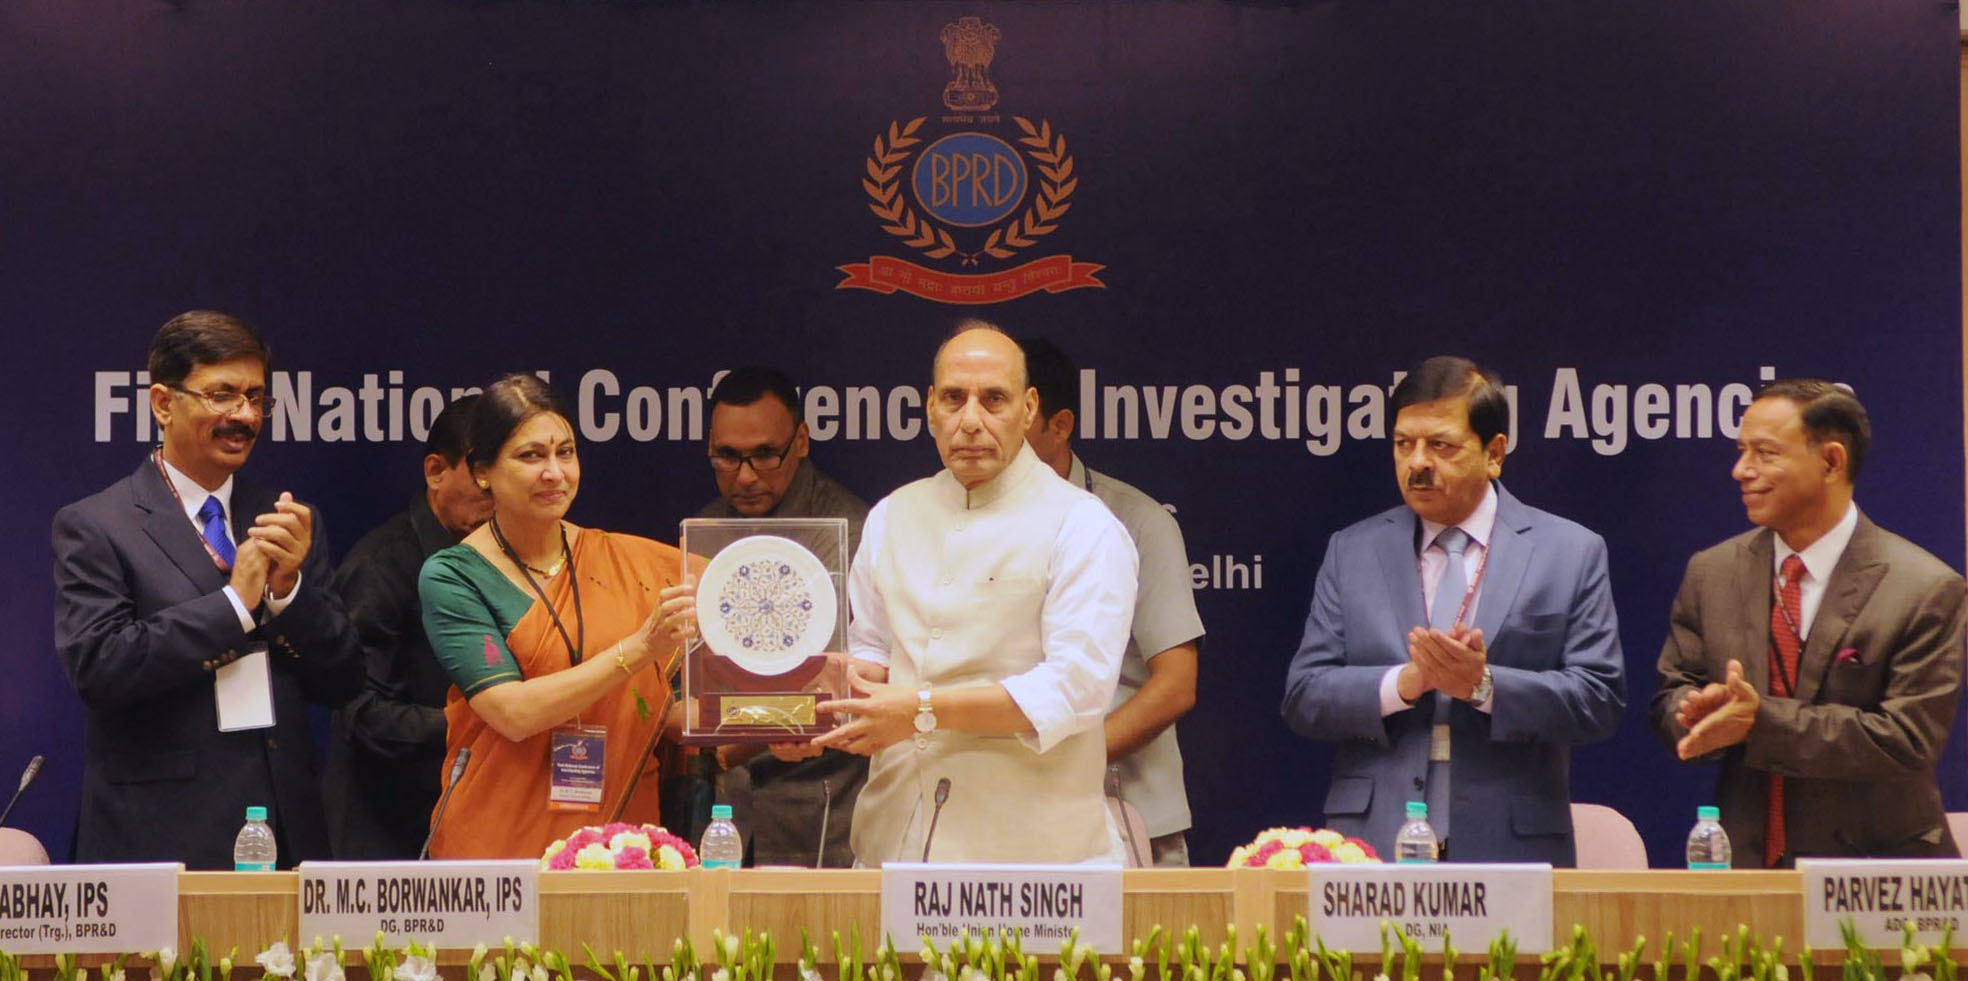 The Union Home Minister, Shri Rajnath Singh being presented a memento by the DG, Bureau of Police Research and Development (BPR&D), Dr. M.C. Borwankar, at the inaugural ceremony of the 1st National Conference of Investigating Agencies, in New Delhi on August 12, 2016. The DG, NIA, Shri Sharad Kumar and other dignitaries are also seen.